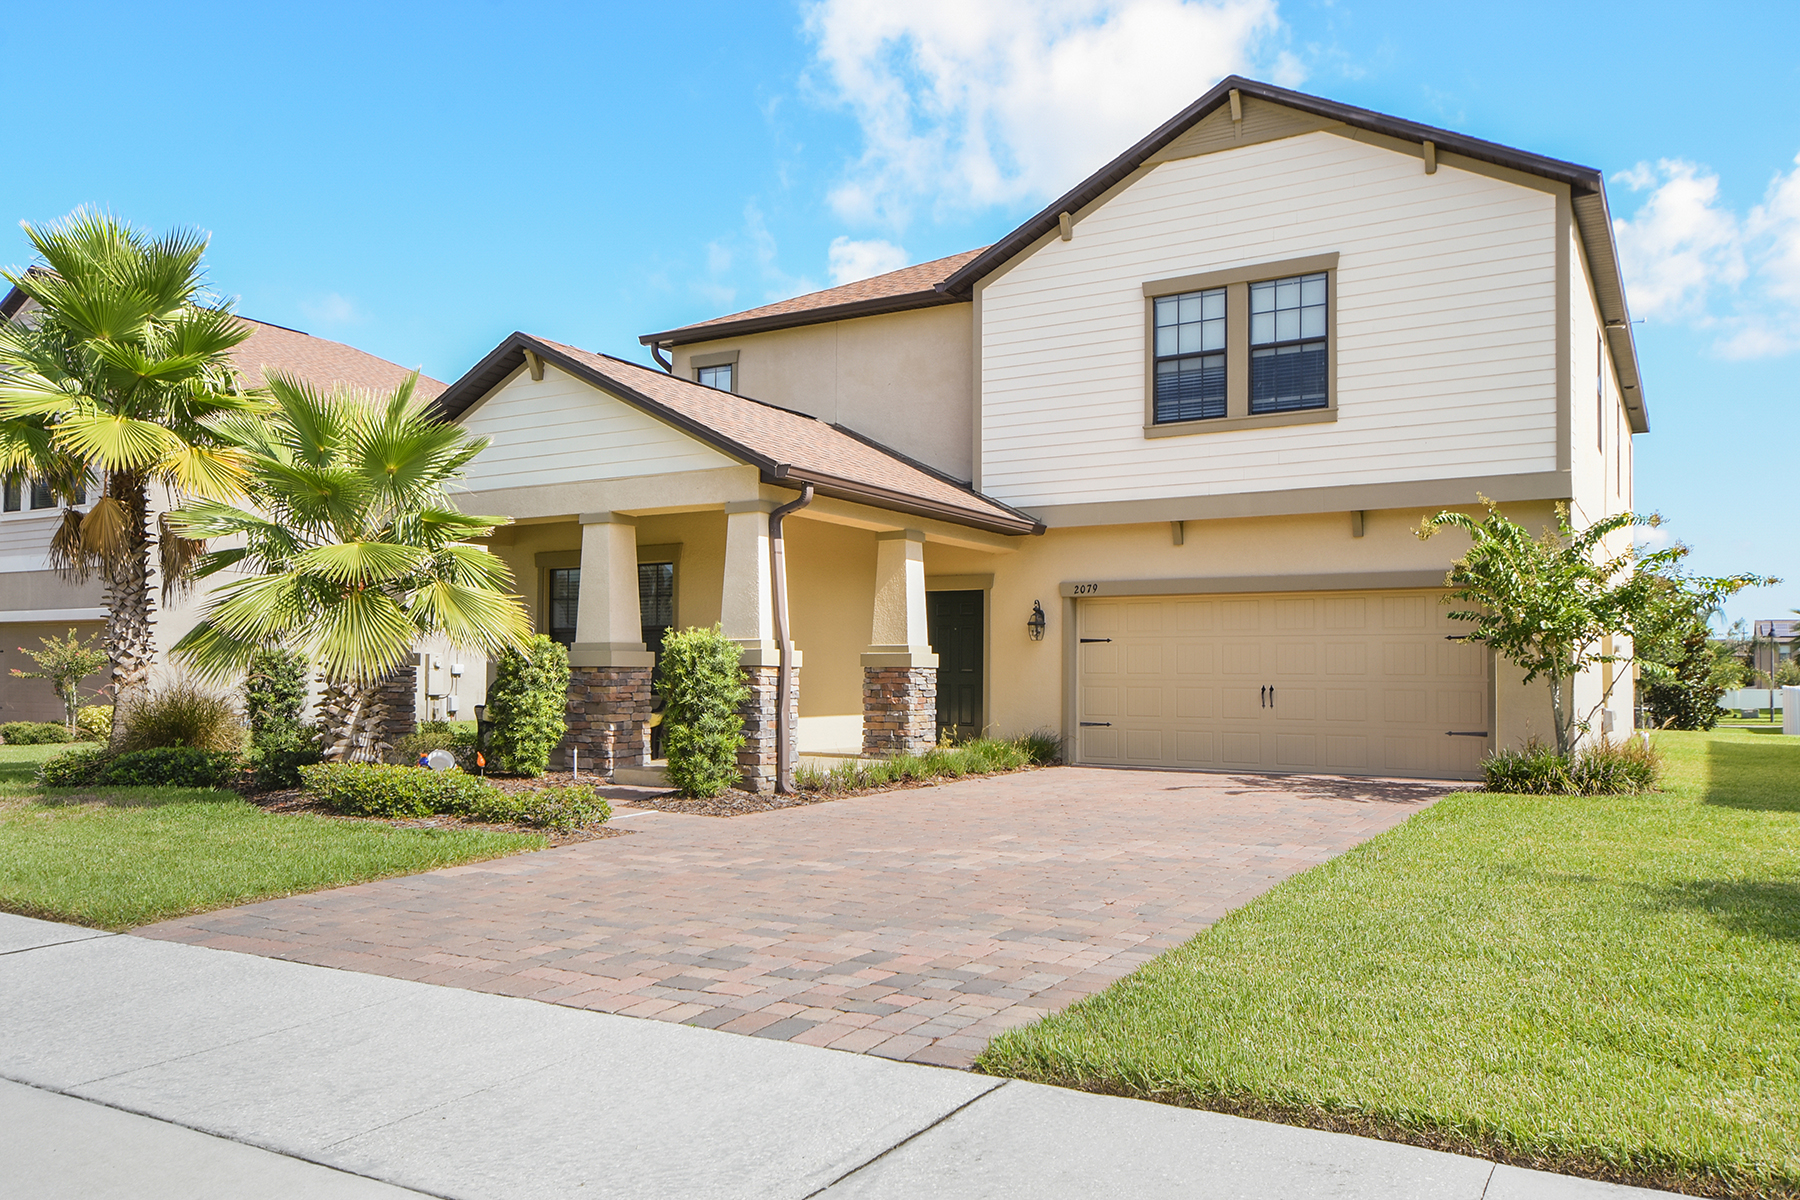 Single Family Homes for Sale at WINTER GARDEN-ORLANDO 2079 Nerva Rd Winter Garden, Florida 34787 United States